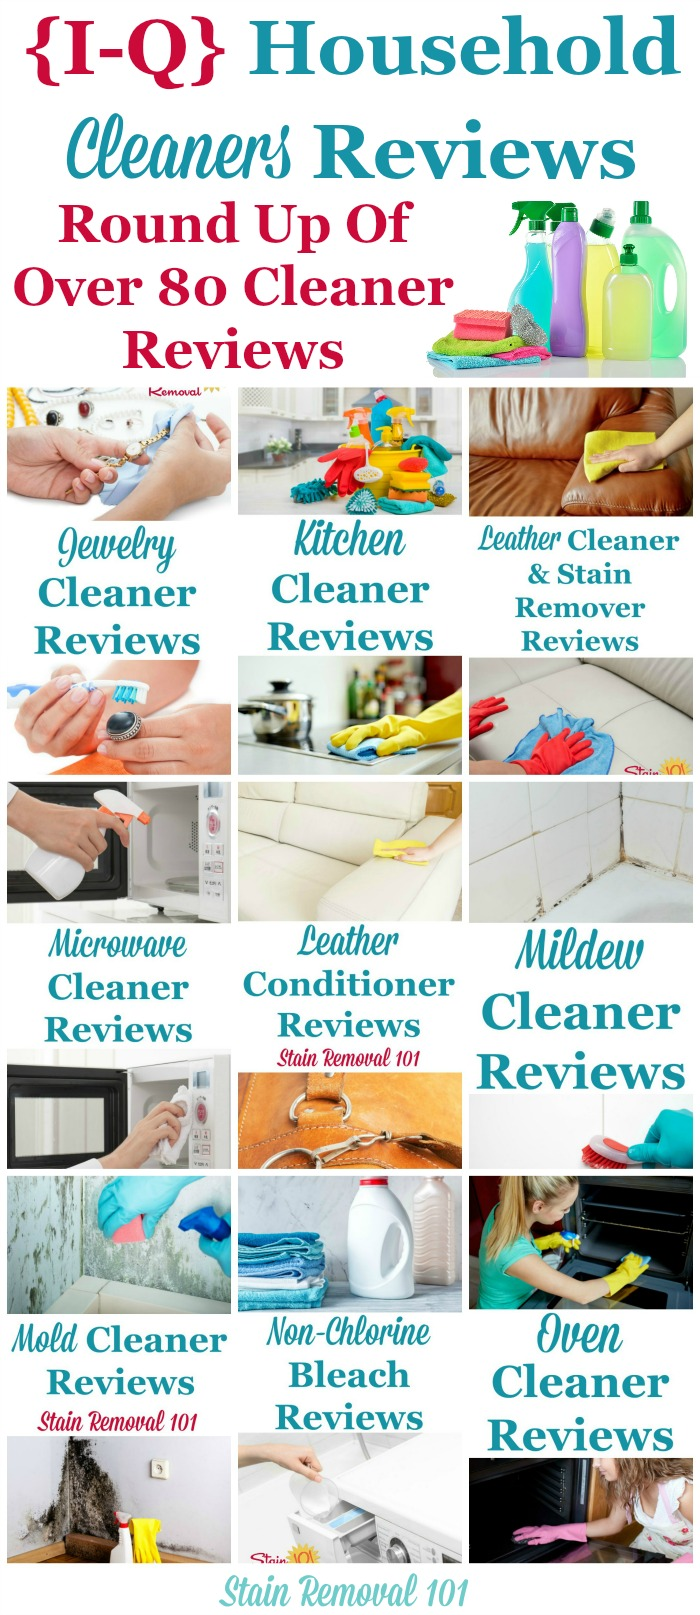 Here is a one of the most comprehensive round ups you'll find on the Internet for free, with over 80 household cleaners reviews, reviewed by Taylor from Stain Removal 101, or other readers from the site, beginning with the letters I - Q, so you can find the best cleaning products for your home (plus other pages on the site have the all the other letters of the alphabet, there are just that many reviews!) {on Stain Removal 101}